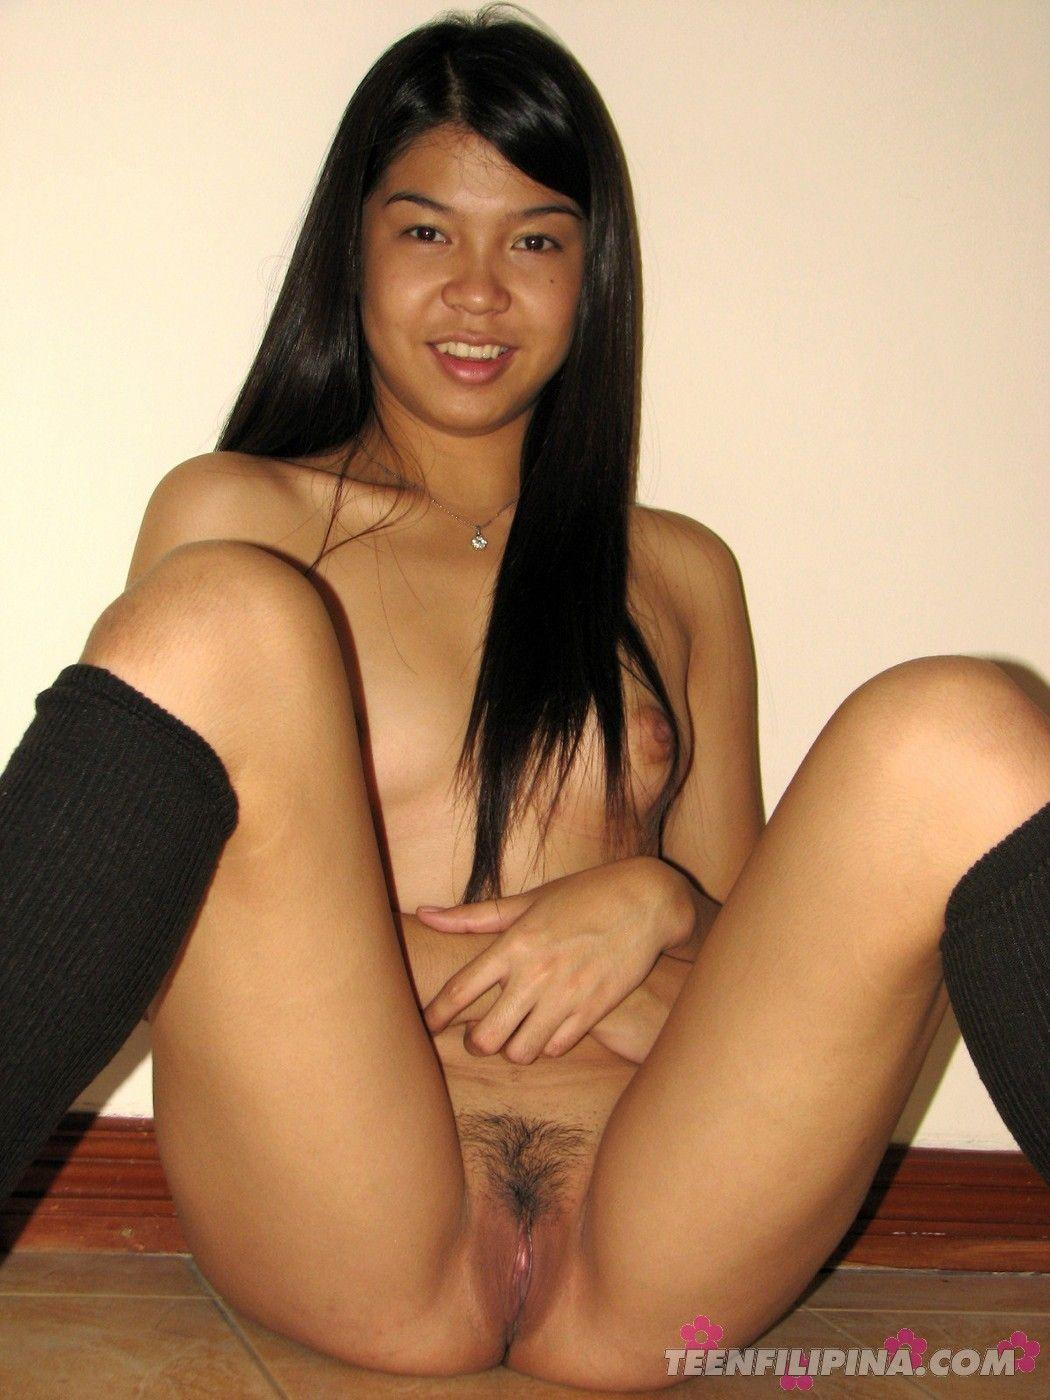 Lacey pictures filipina porn gallery